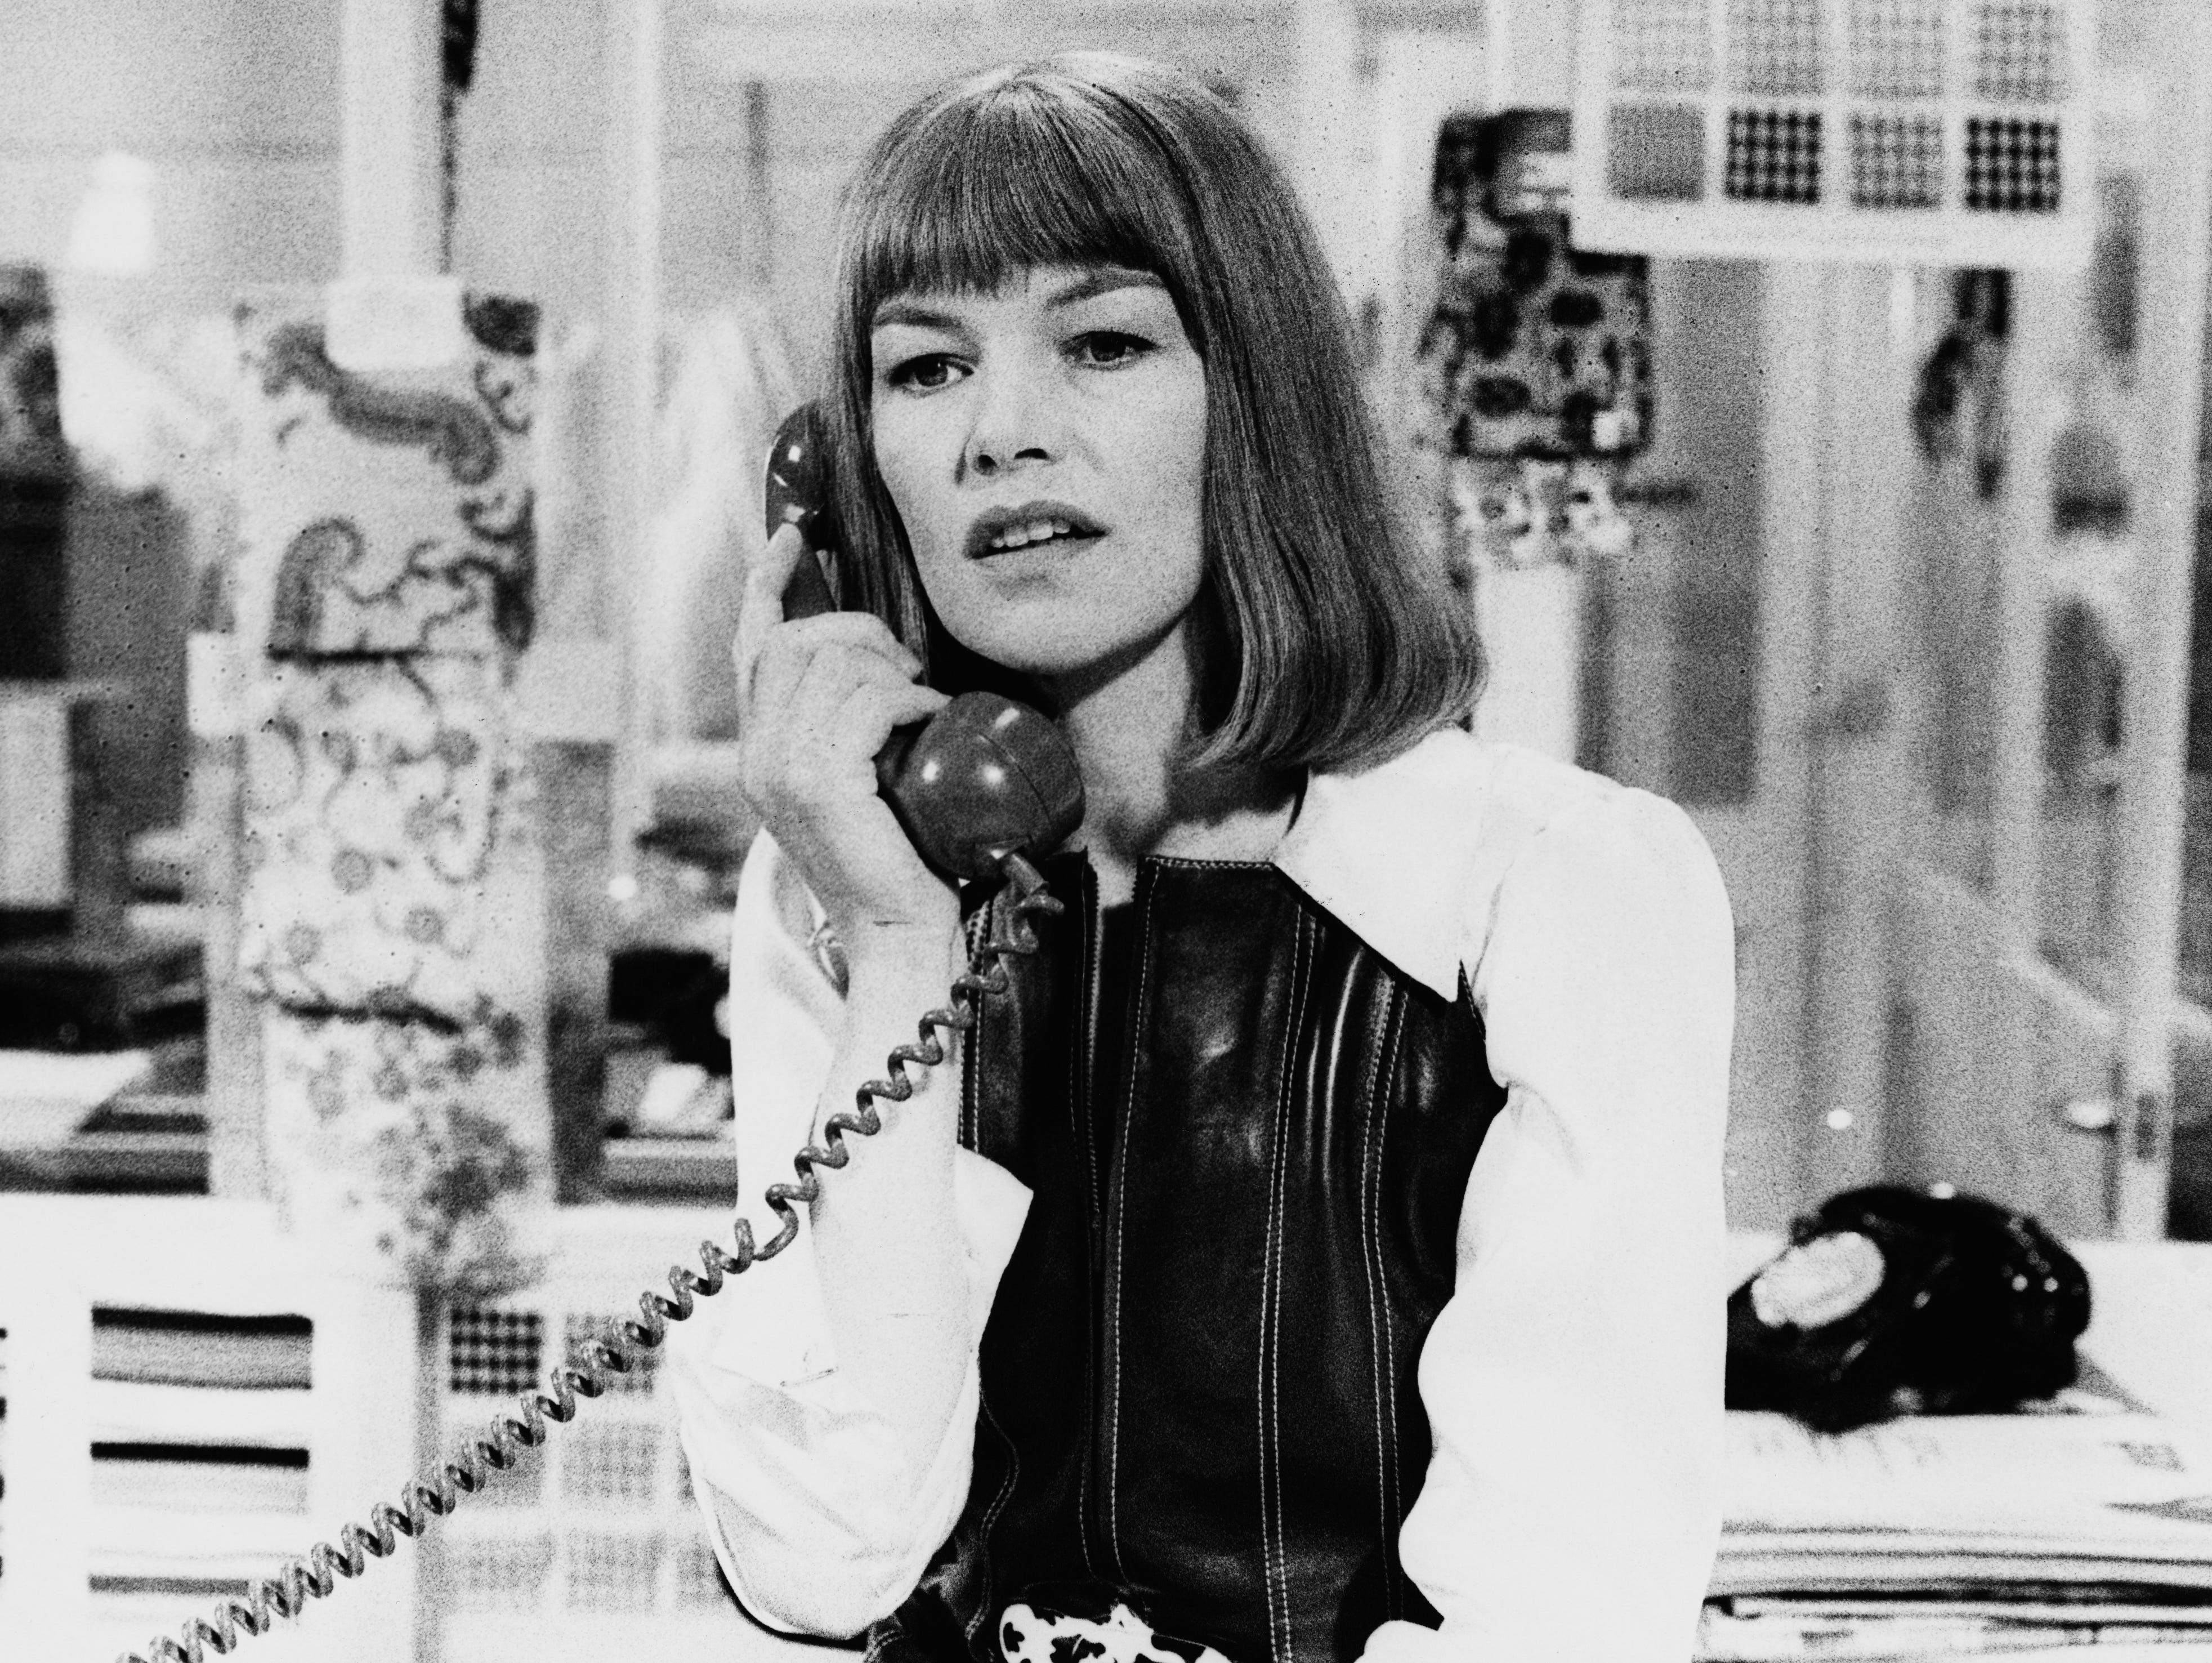 ONE TIME USE 2/21/2019 Glenda Jackson as Vicki Allessio in the 1973 film A Touch of Class. (Photo by John Springer Collection/CORBIS/Corbis via Getty Images)